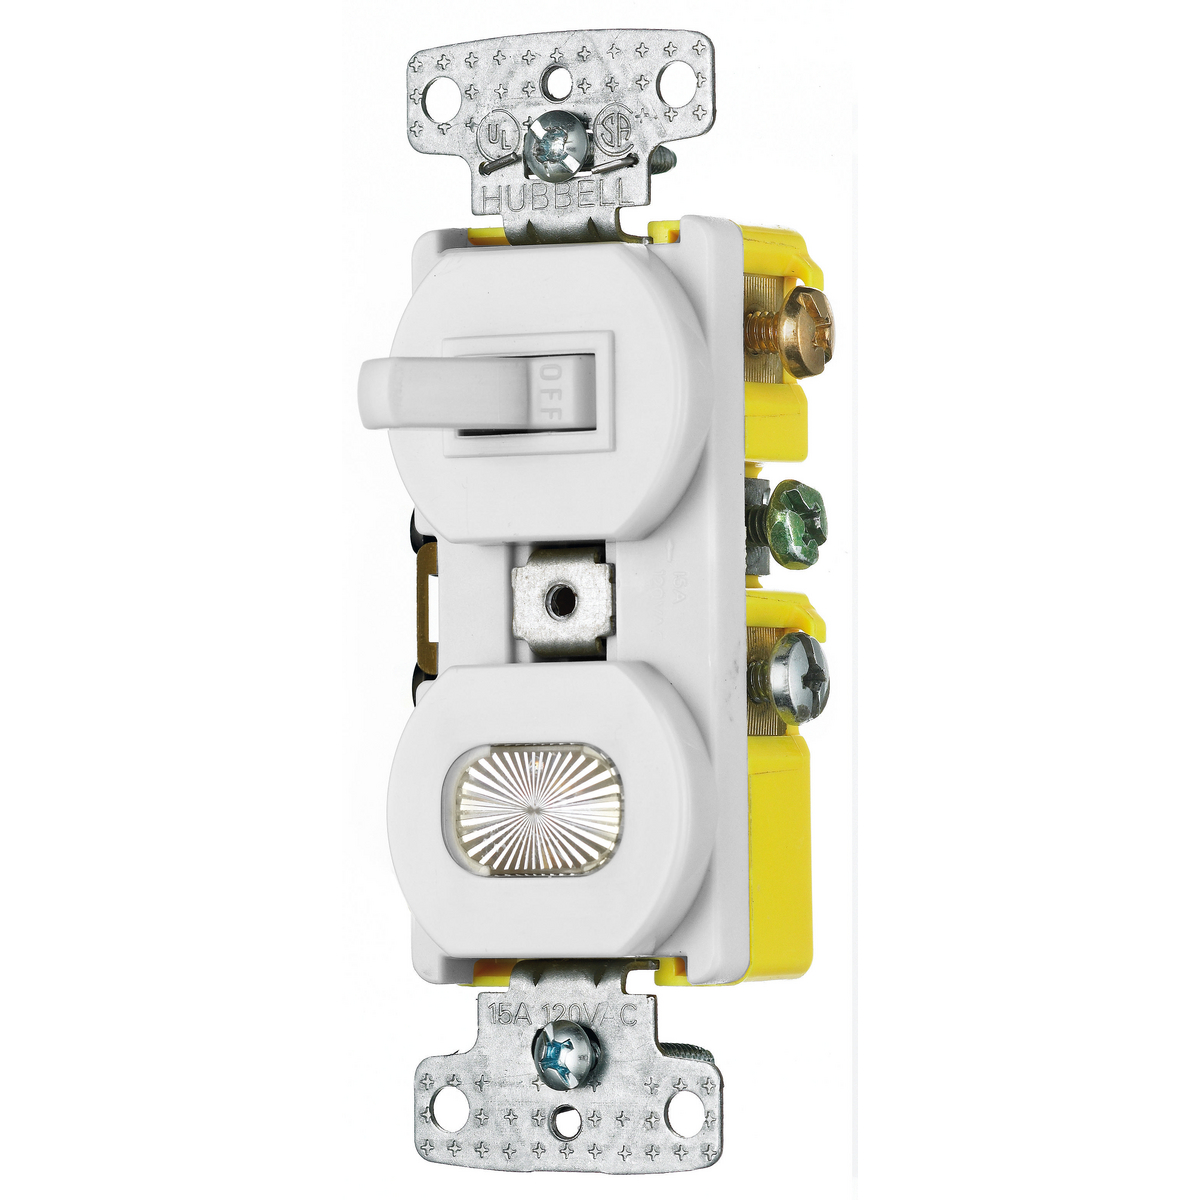 Hubbell RC309W 15 Amp 120 VAC 3-Way White Combination Switch with Pilot Light